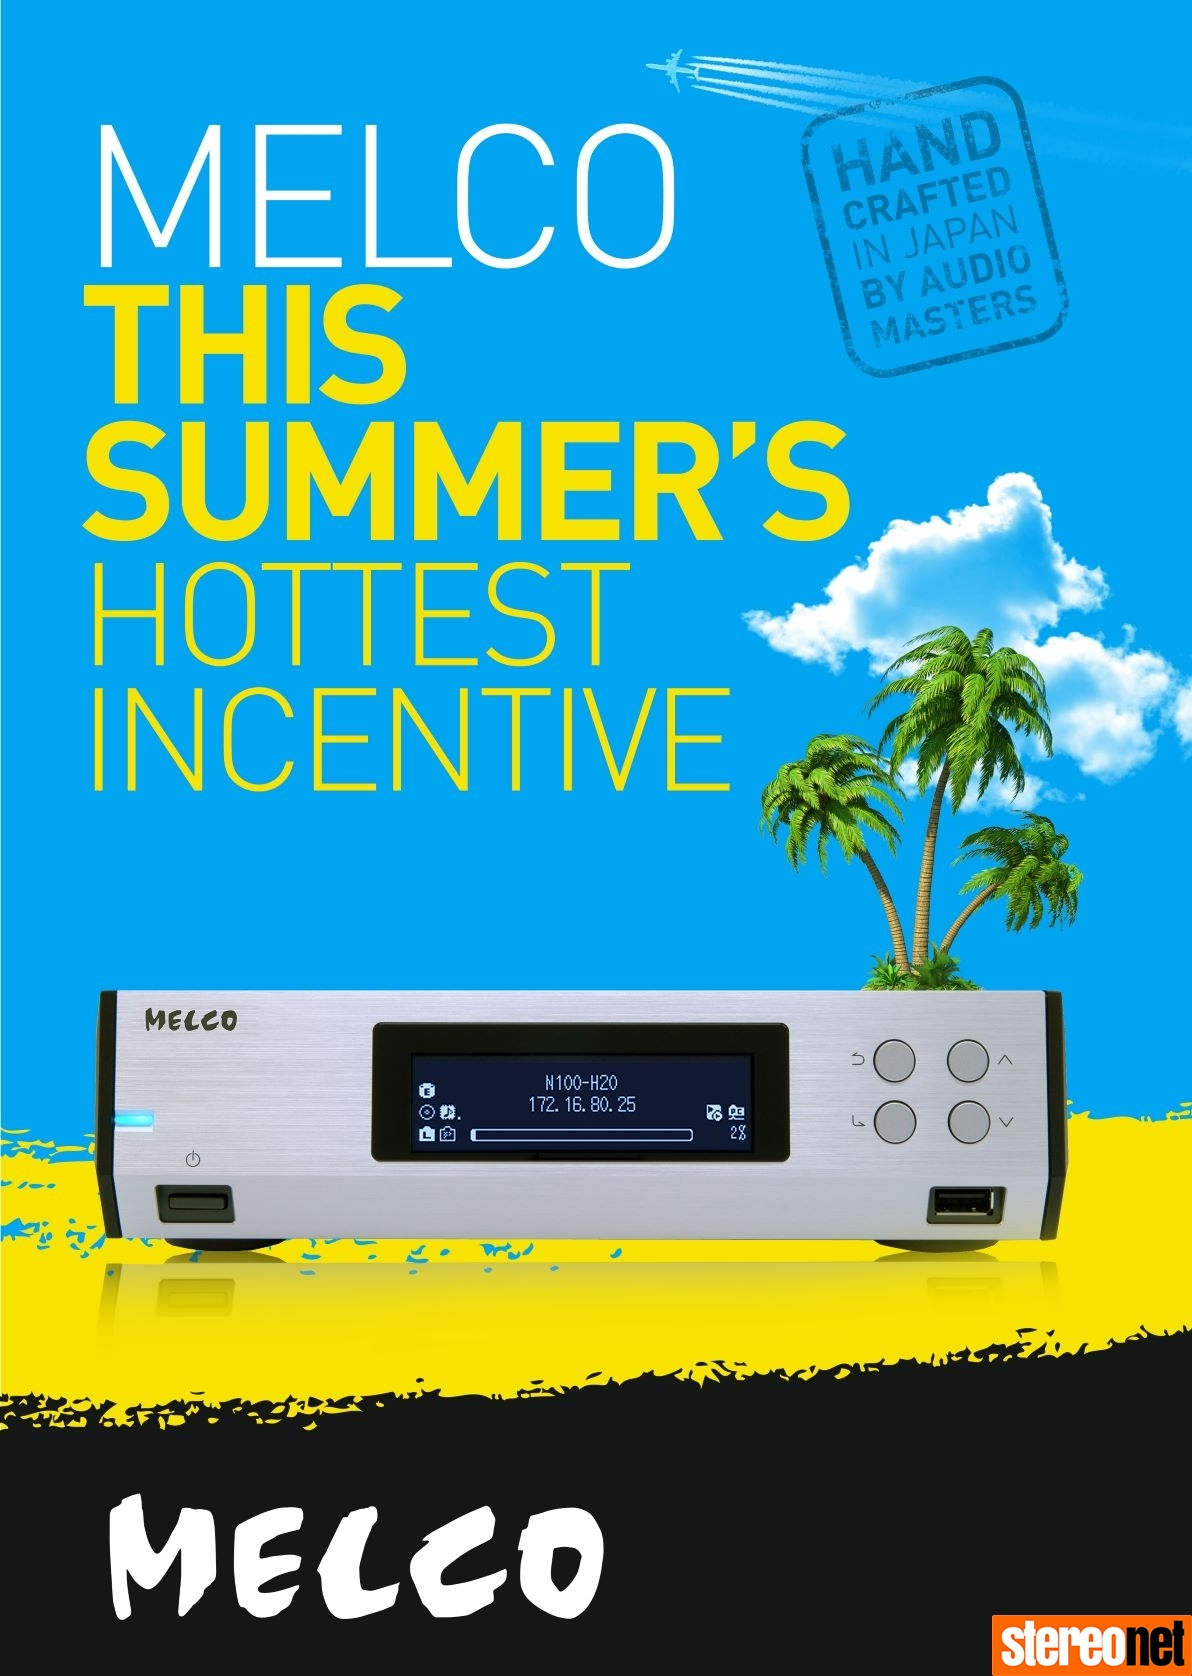 Melco Summer Gift Promotion